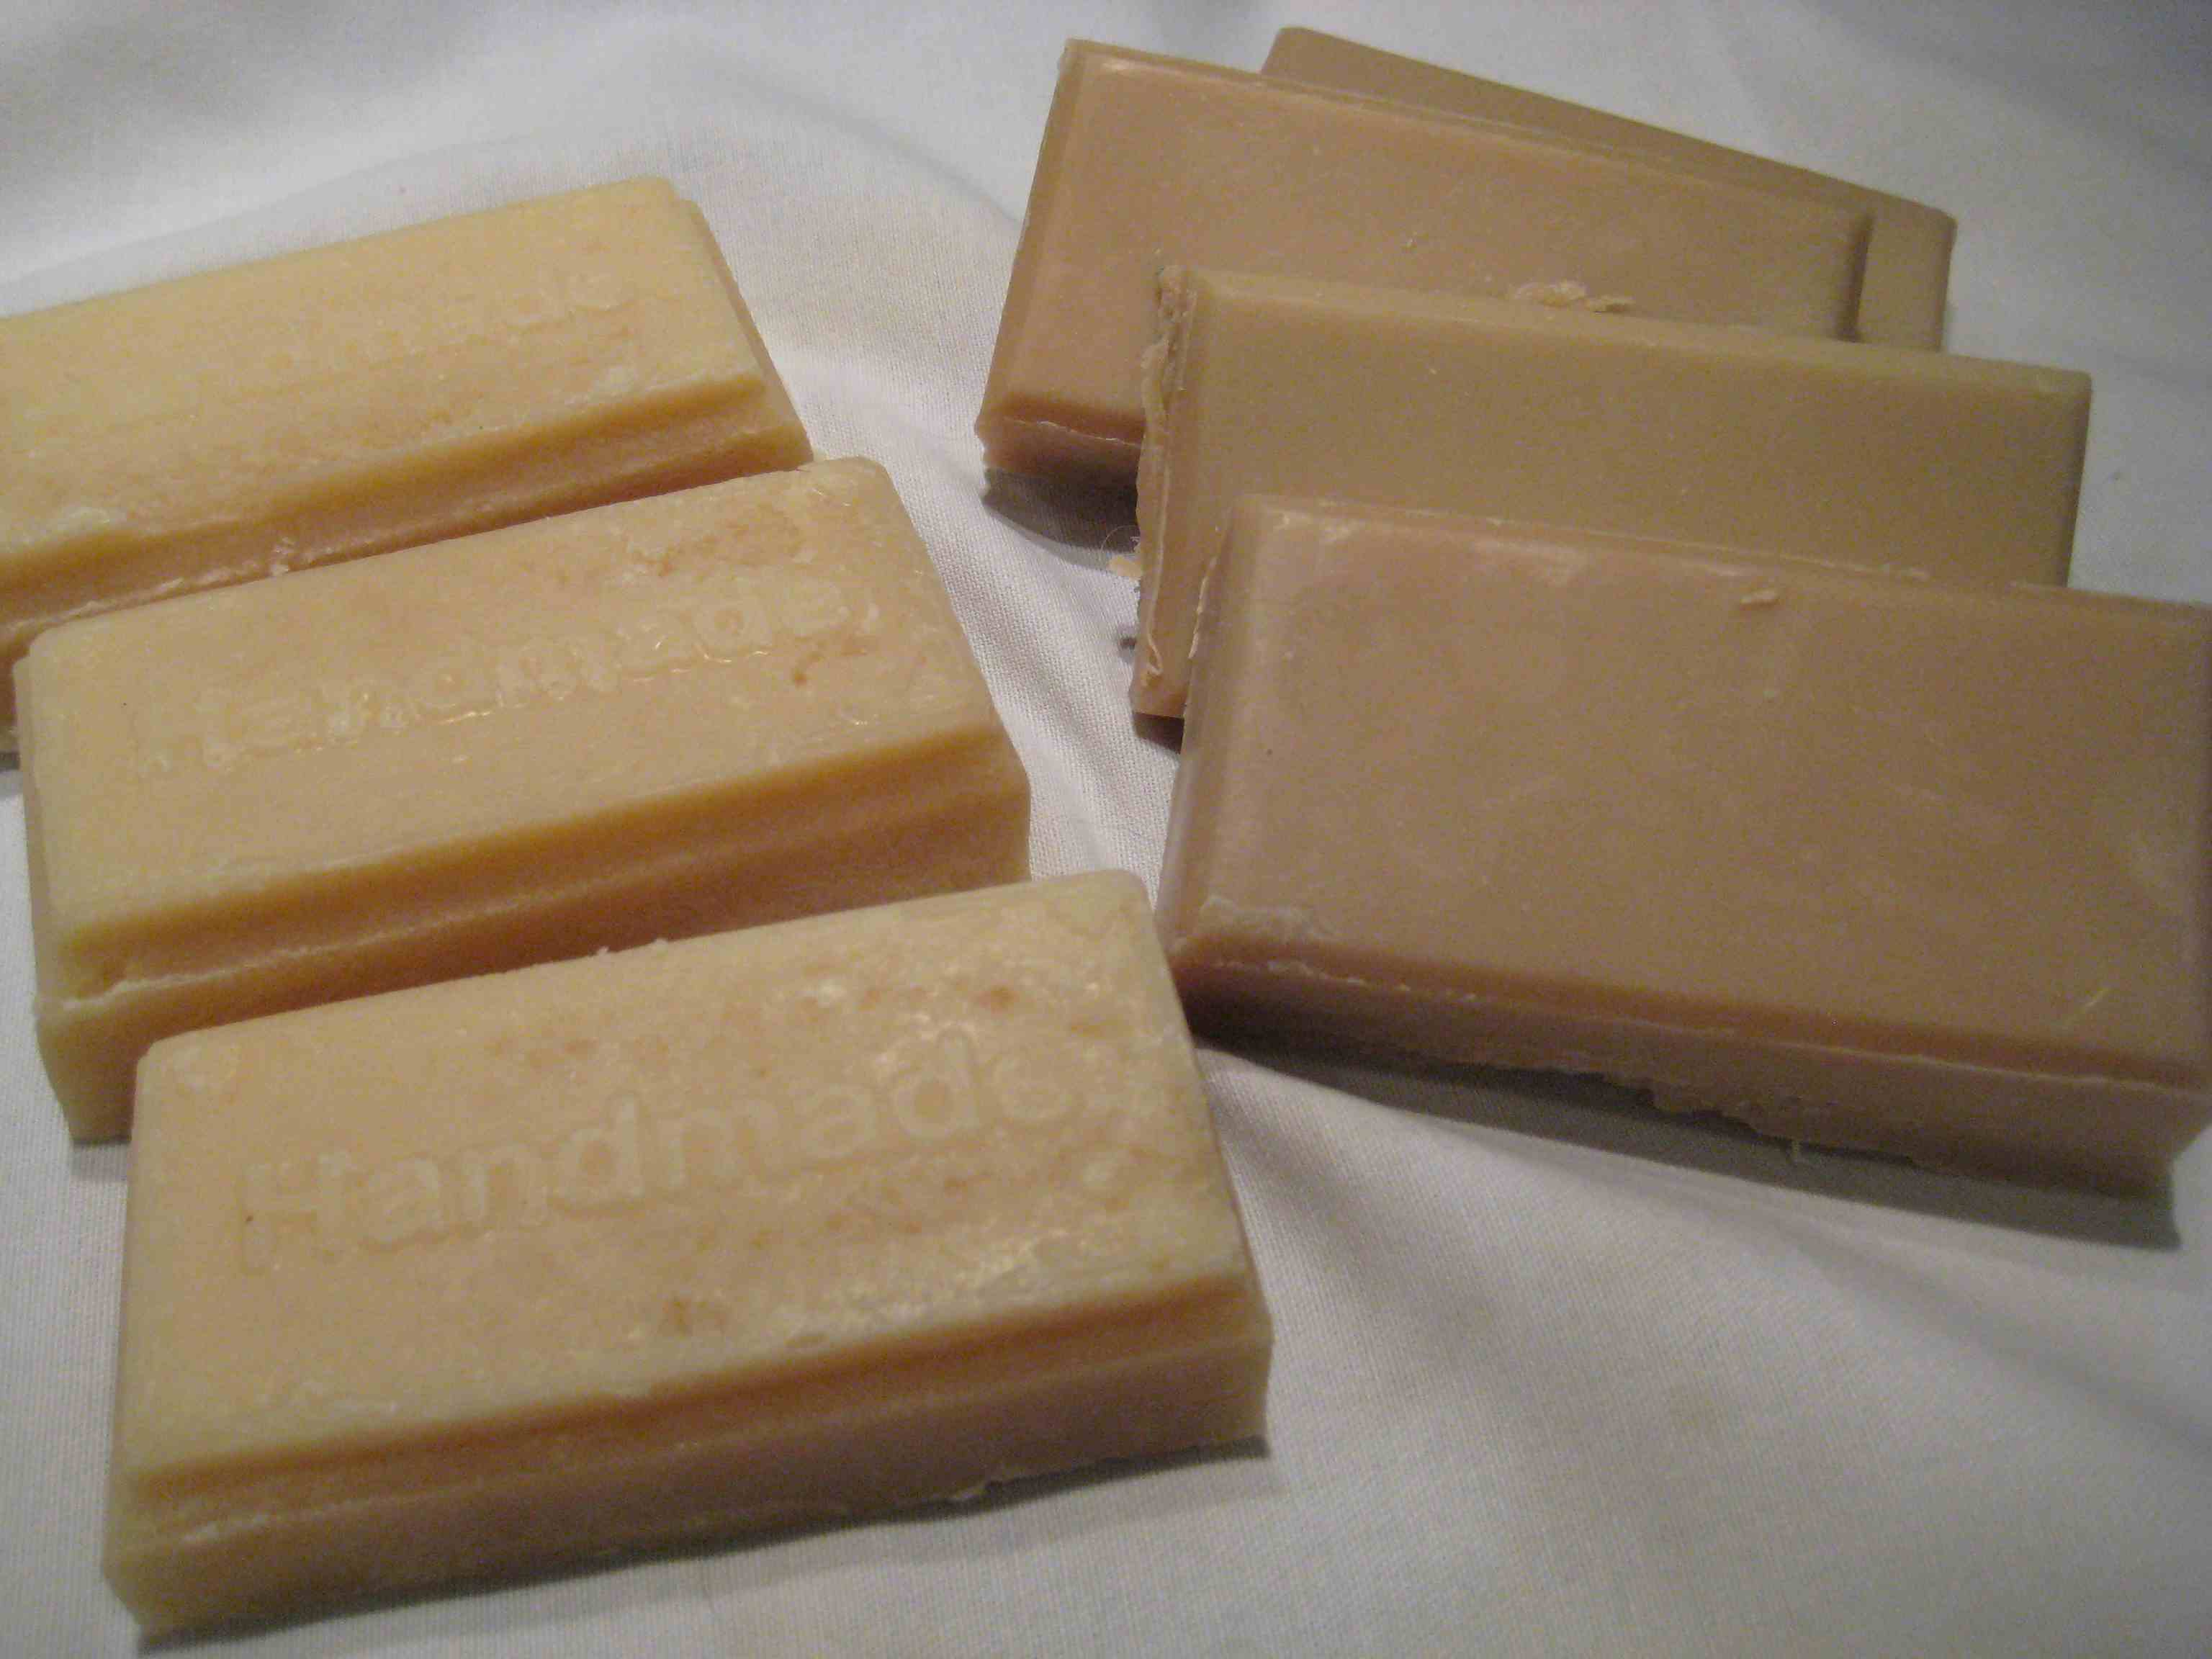 Finished soaps made with heavy cream